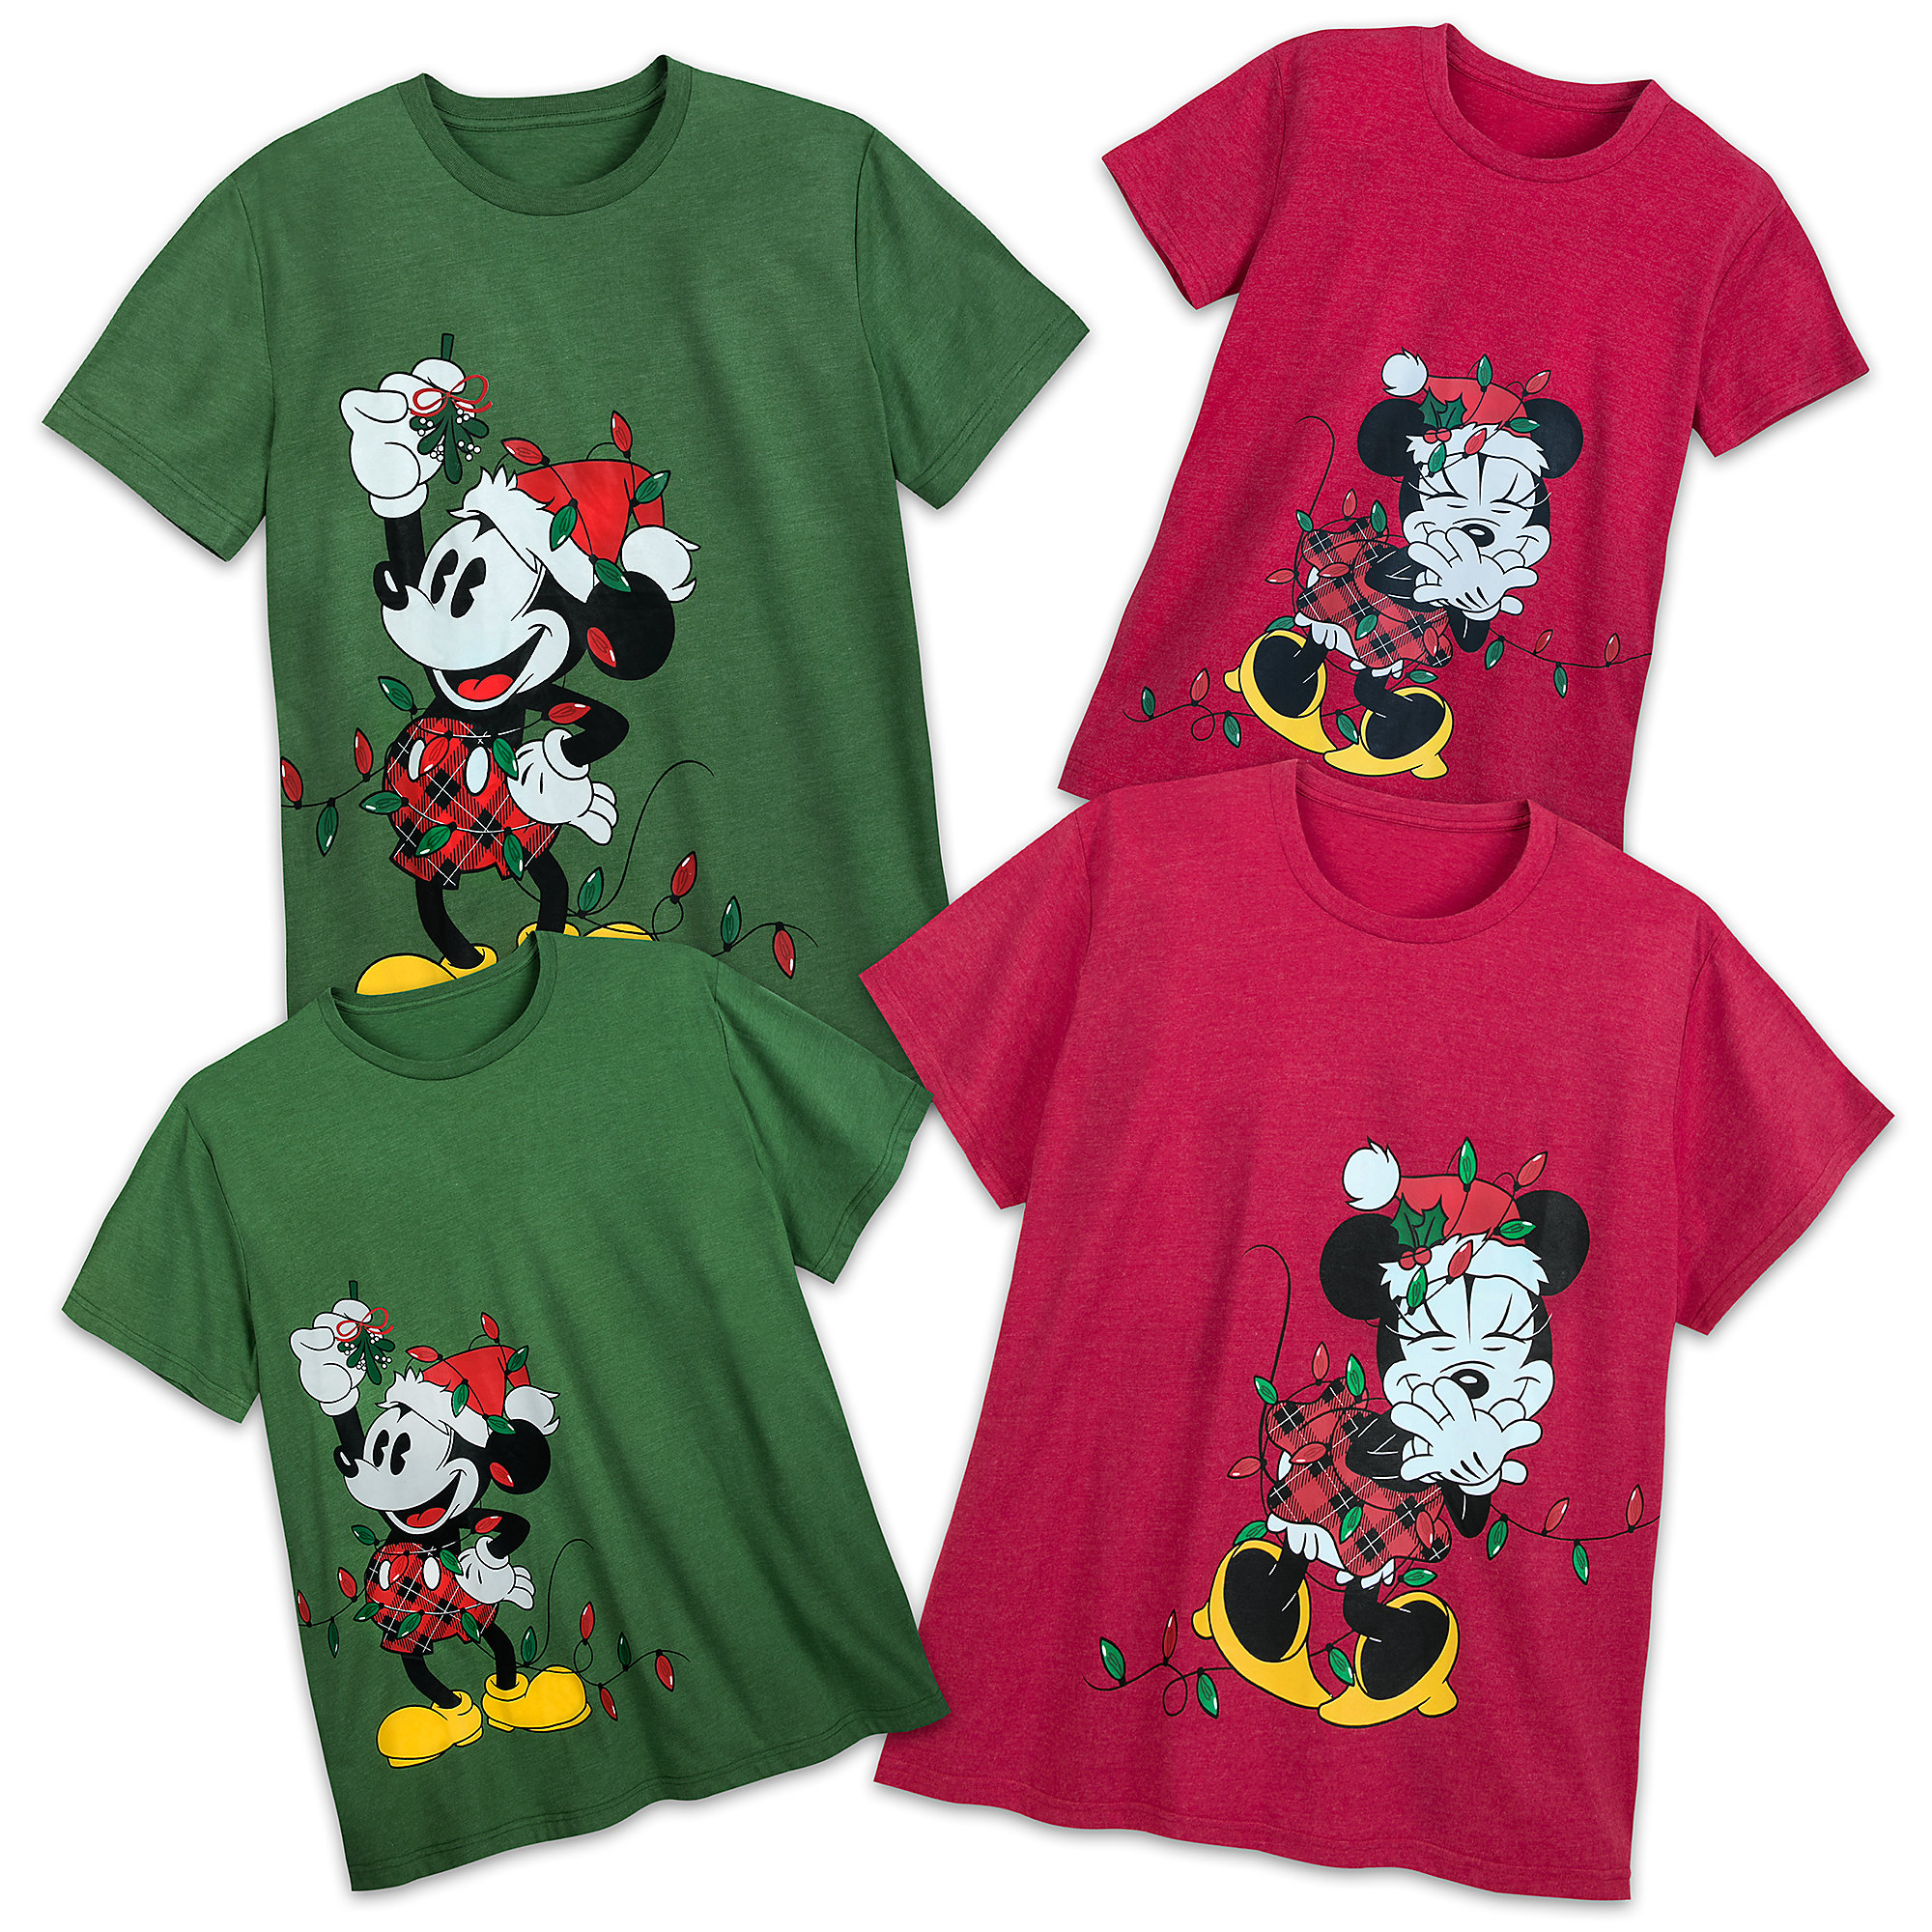 Santa Mickey and Minnie Mouse Holiday Lights T-Shirt Collection for Adults